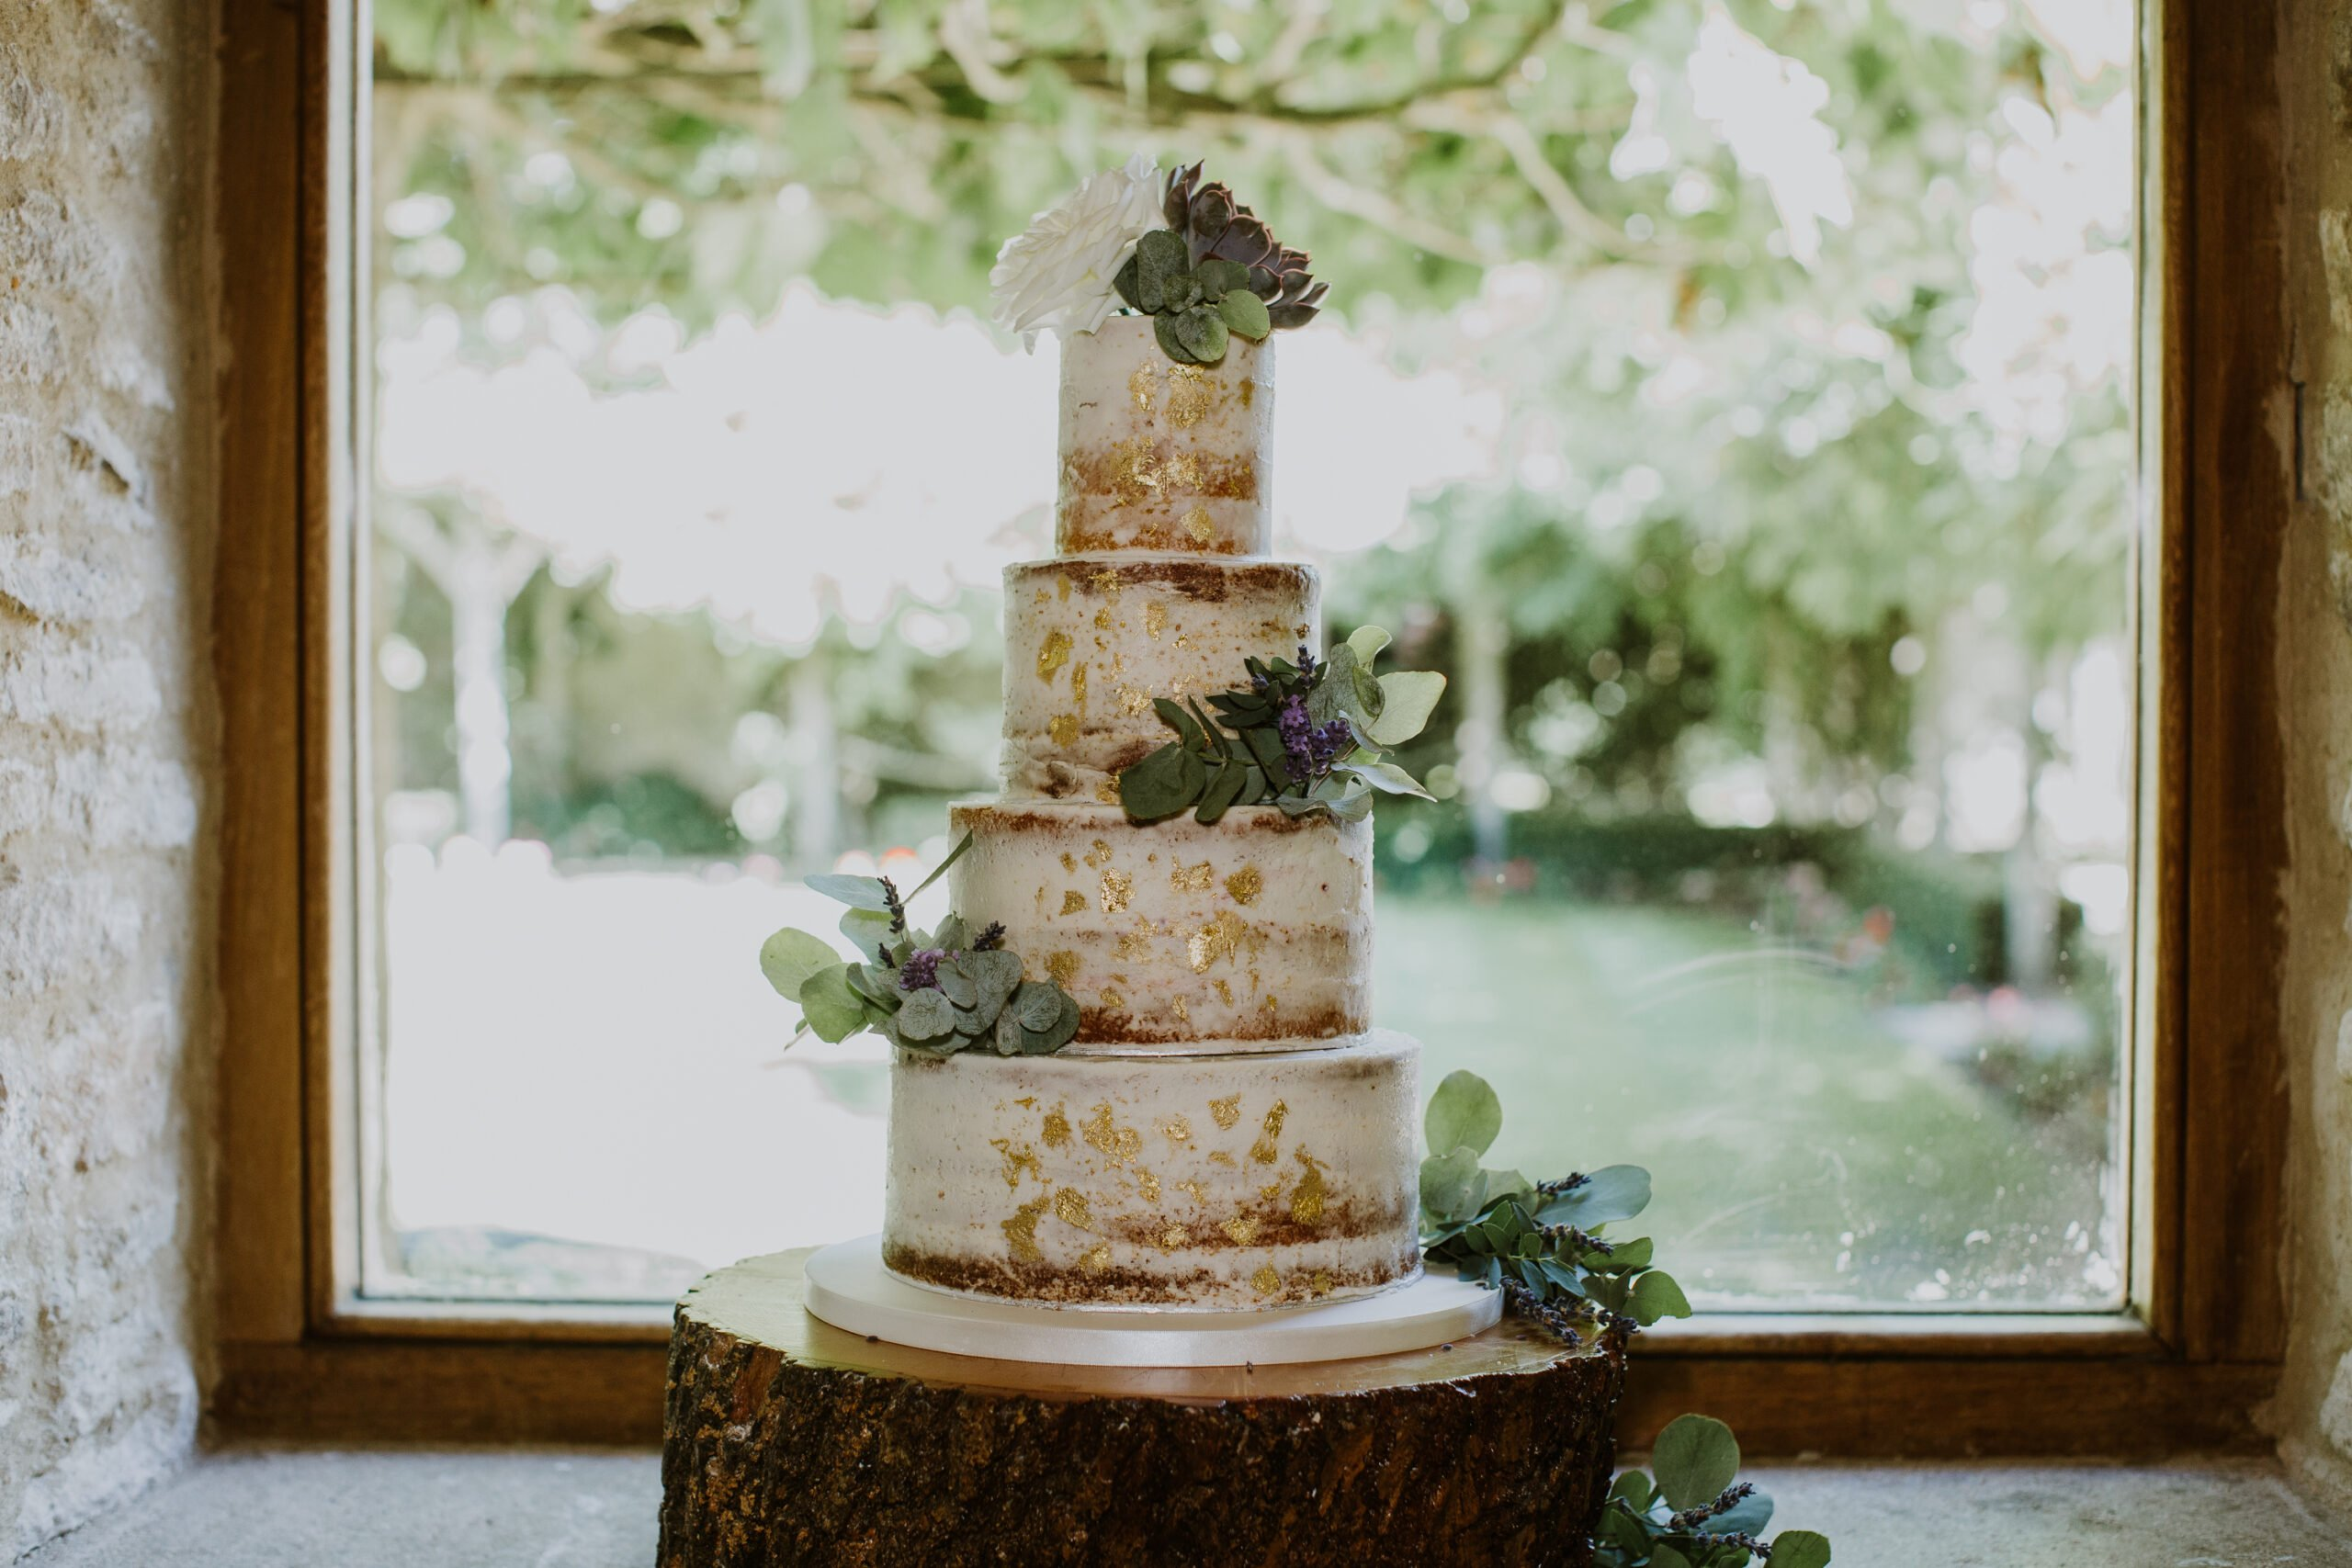 Nearly Naked Cake finished with roses and eucalyptus